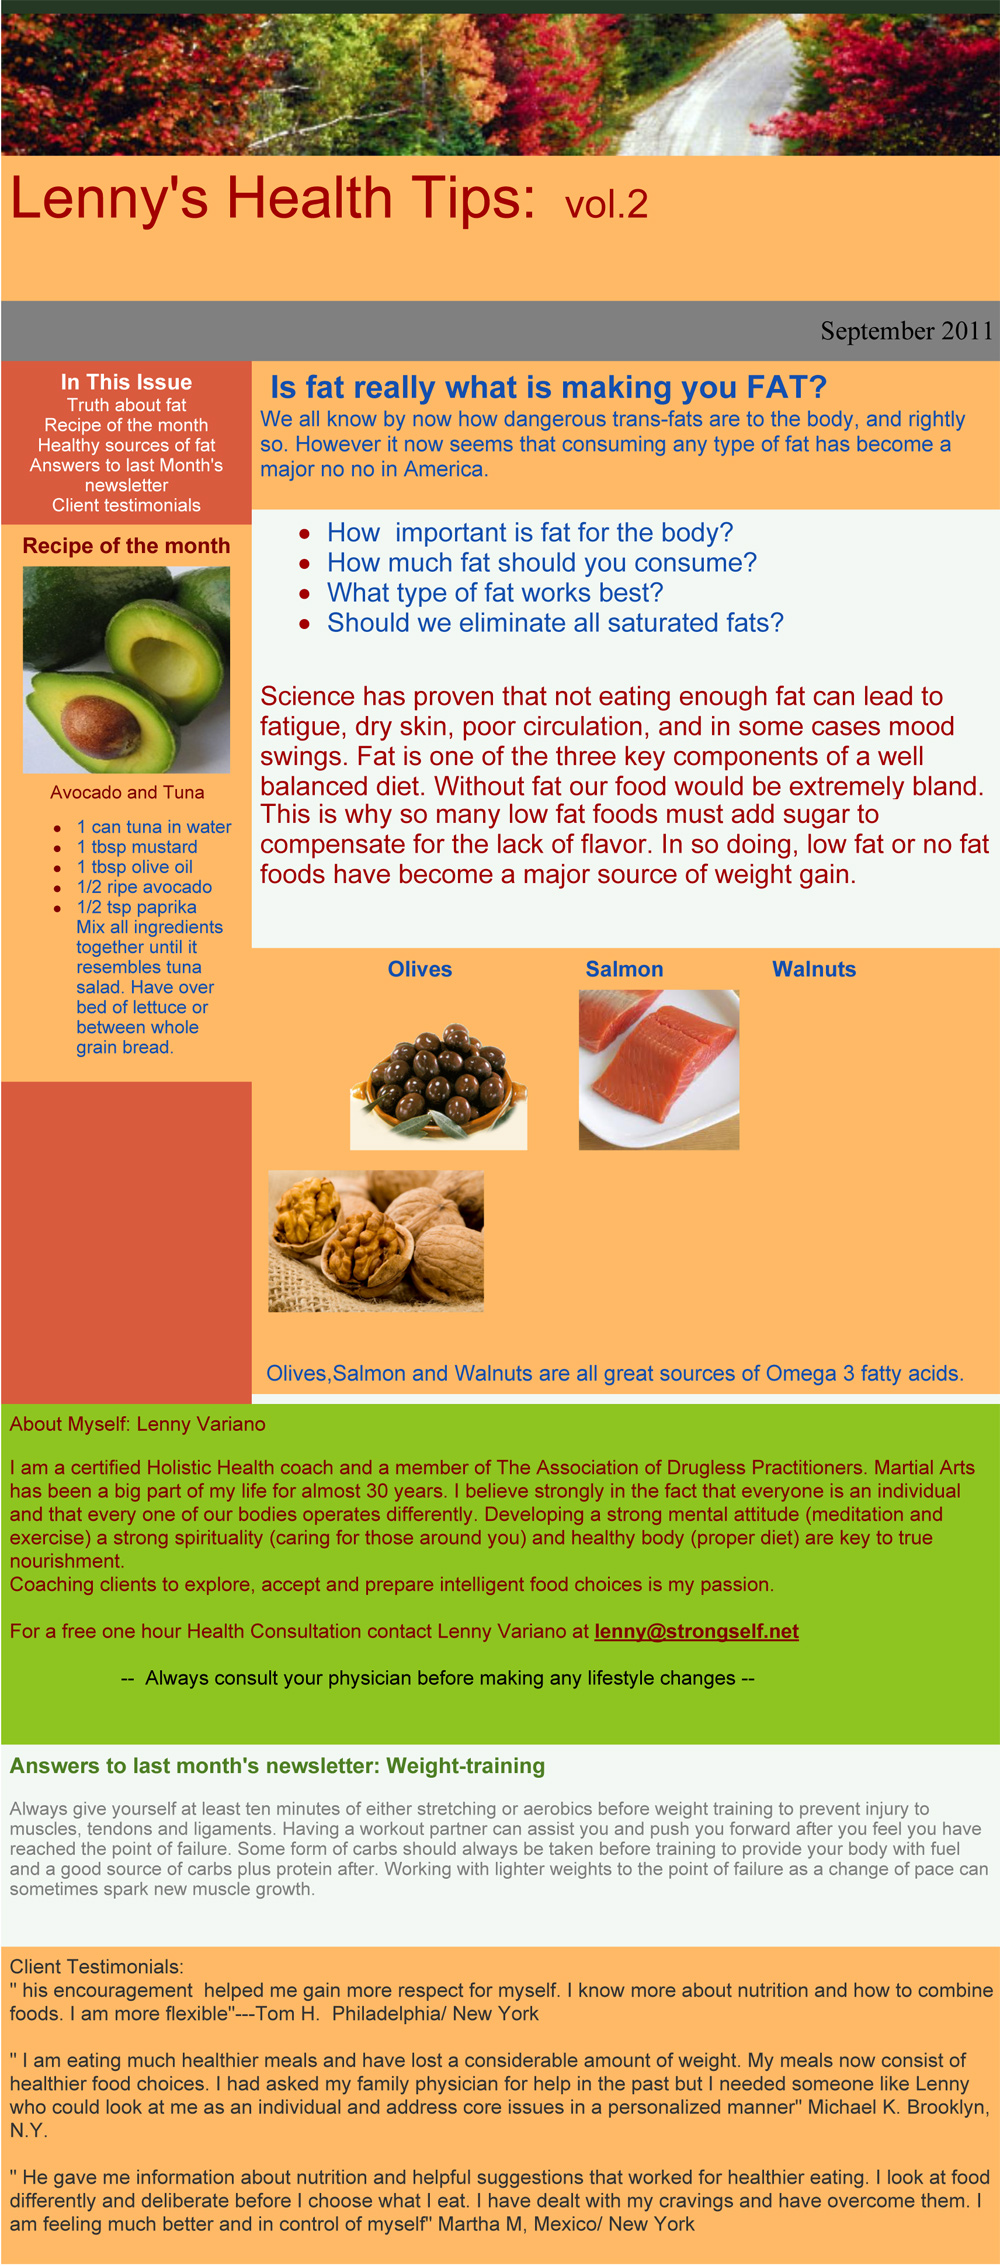 Here are Lenny's tips on healthy fats.